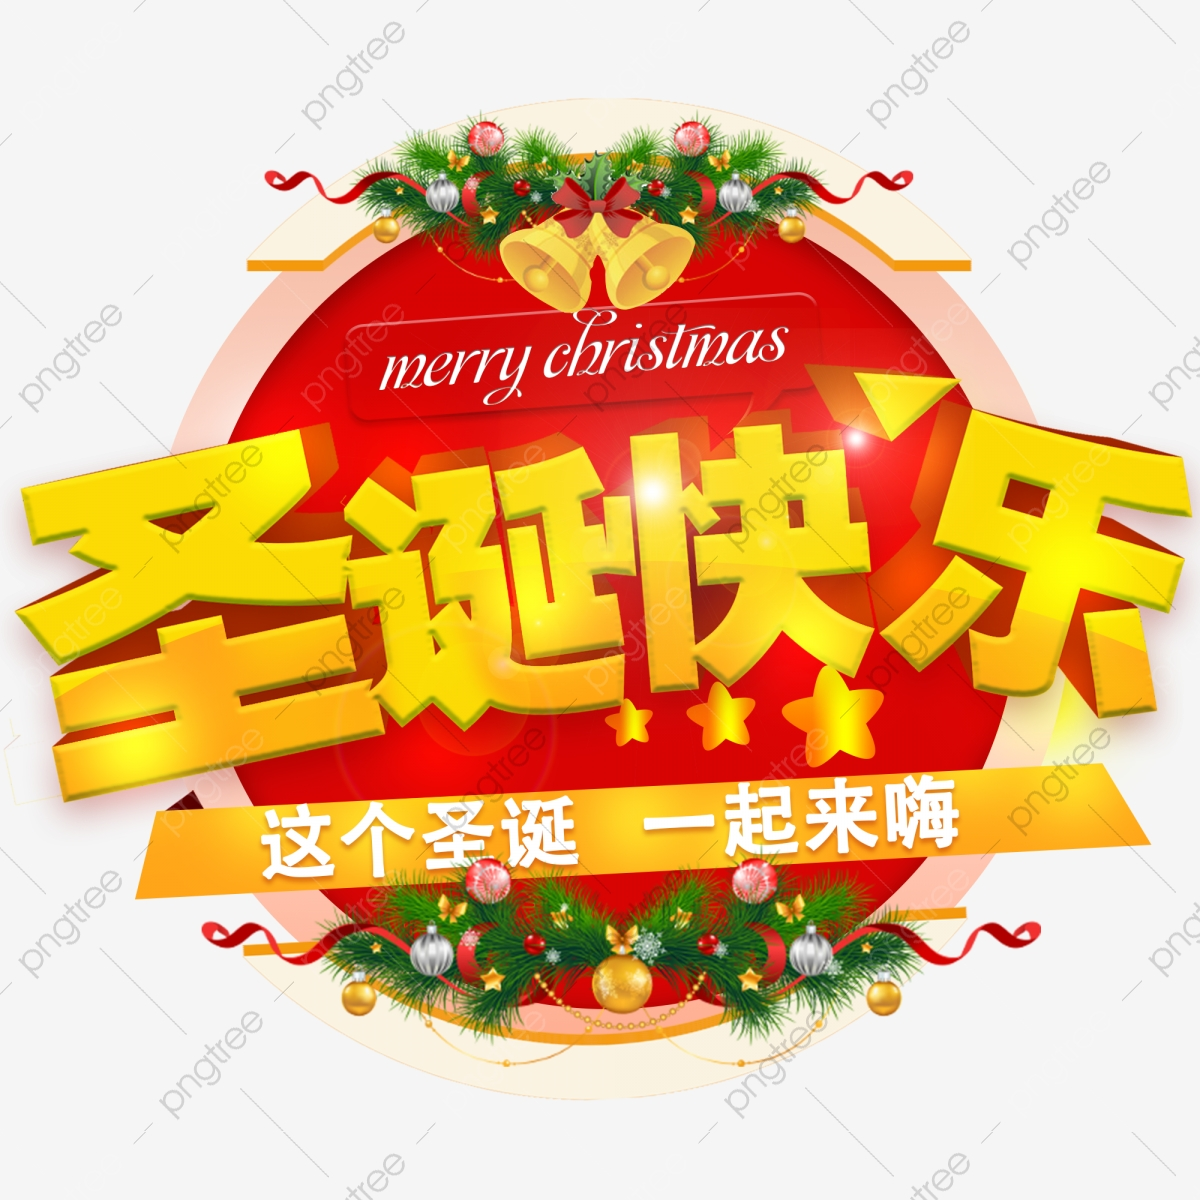 Merry Christmas Writing Clipart.Merry Christmas Christmas Decoration Text Holiday Decoration